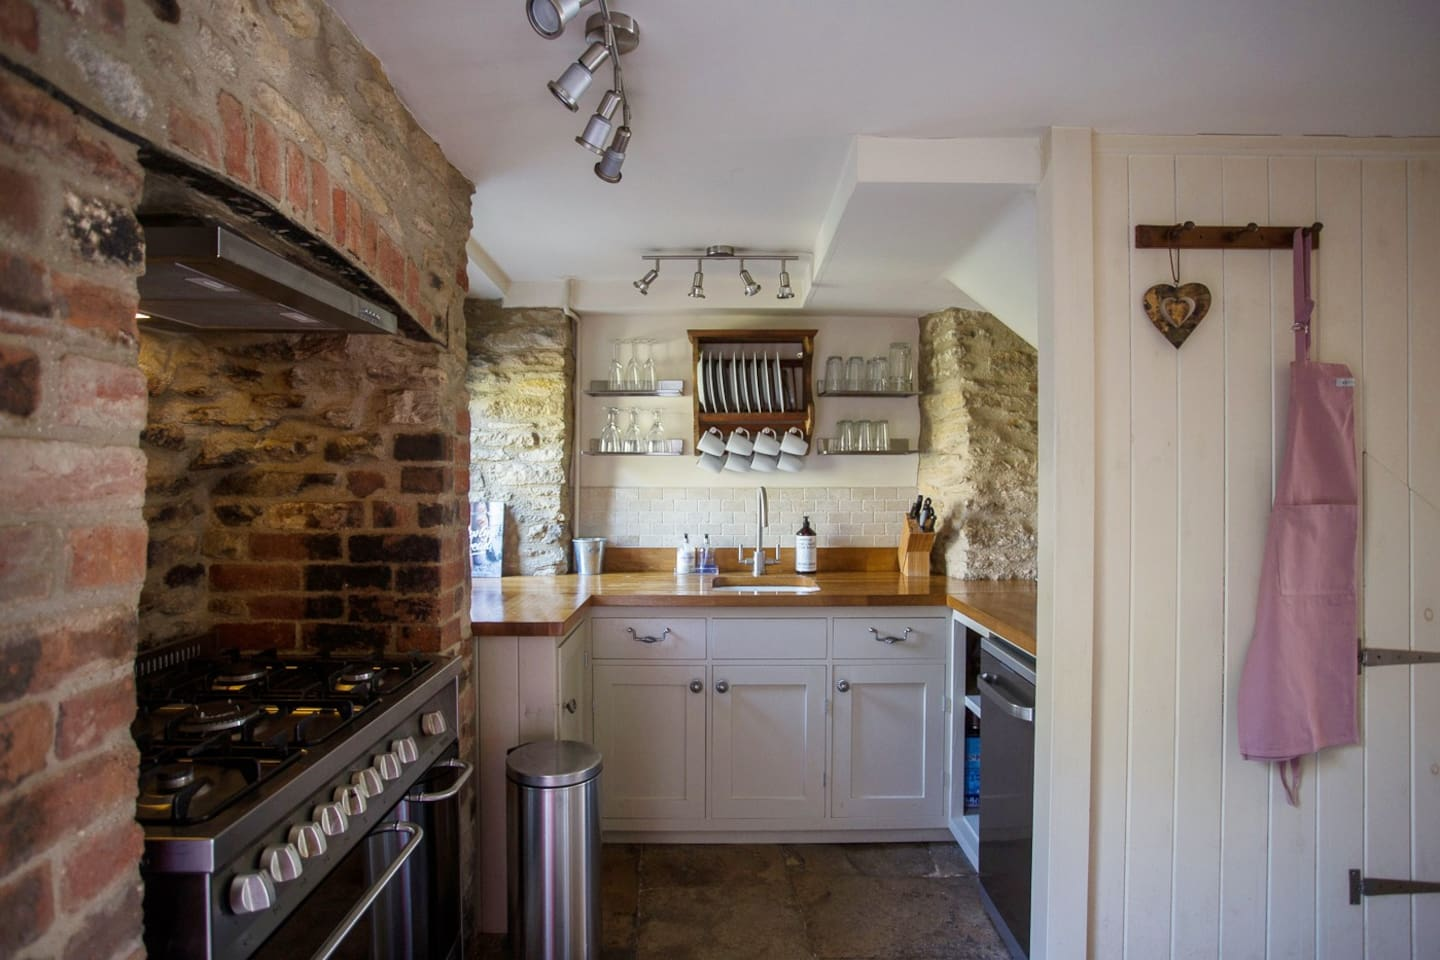 Beautiful cottage kitchen with range